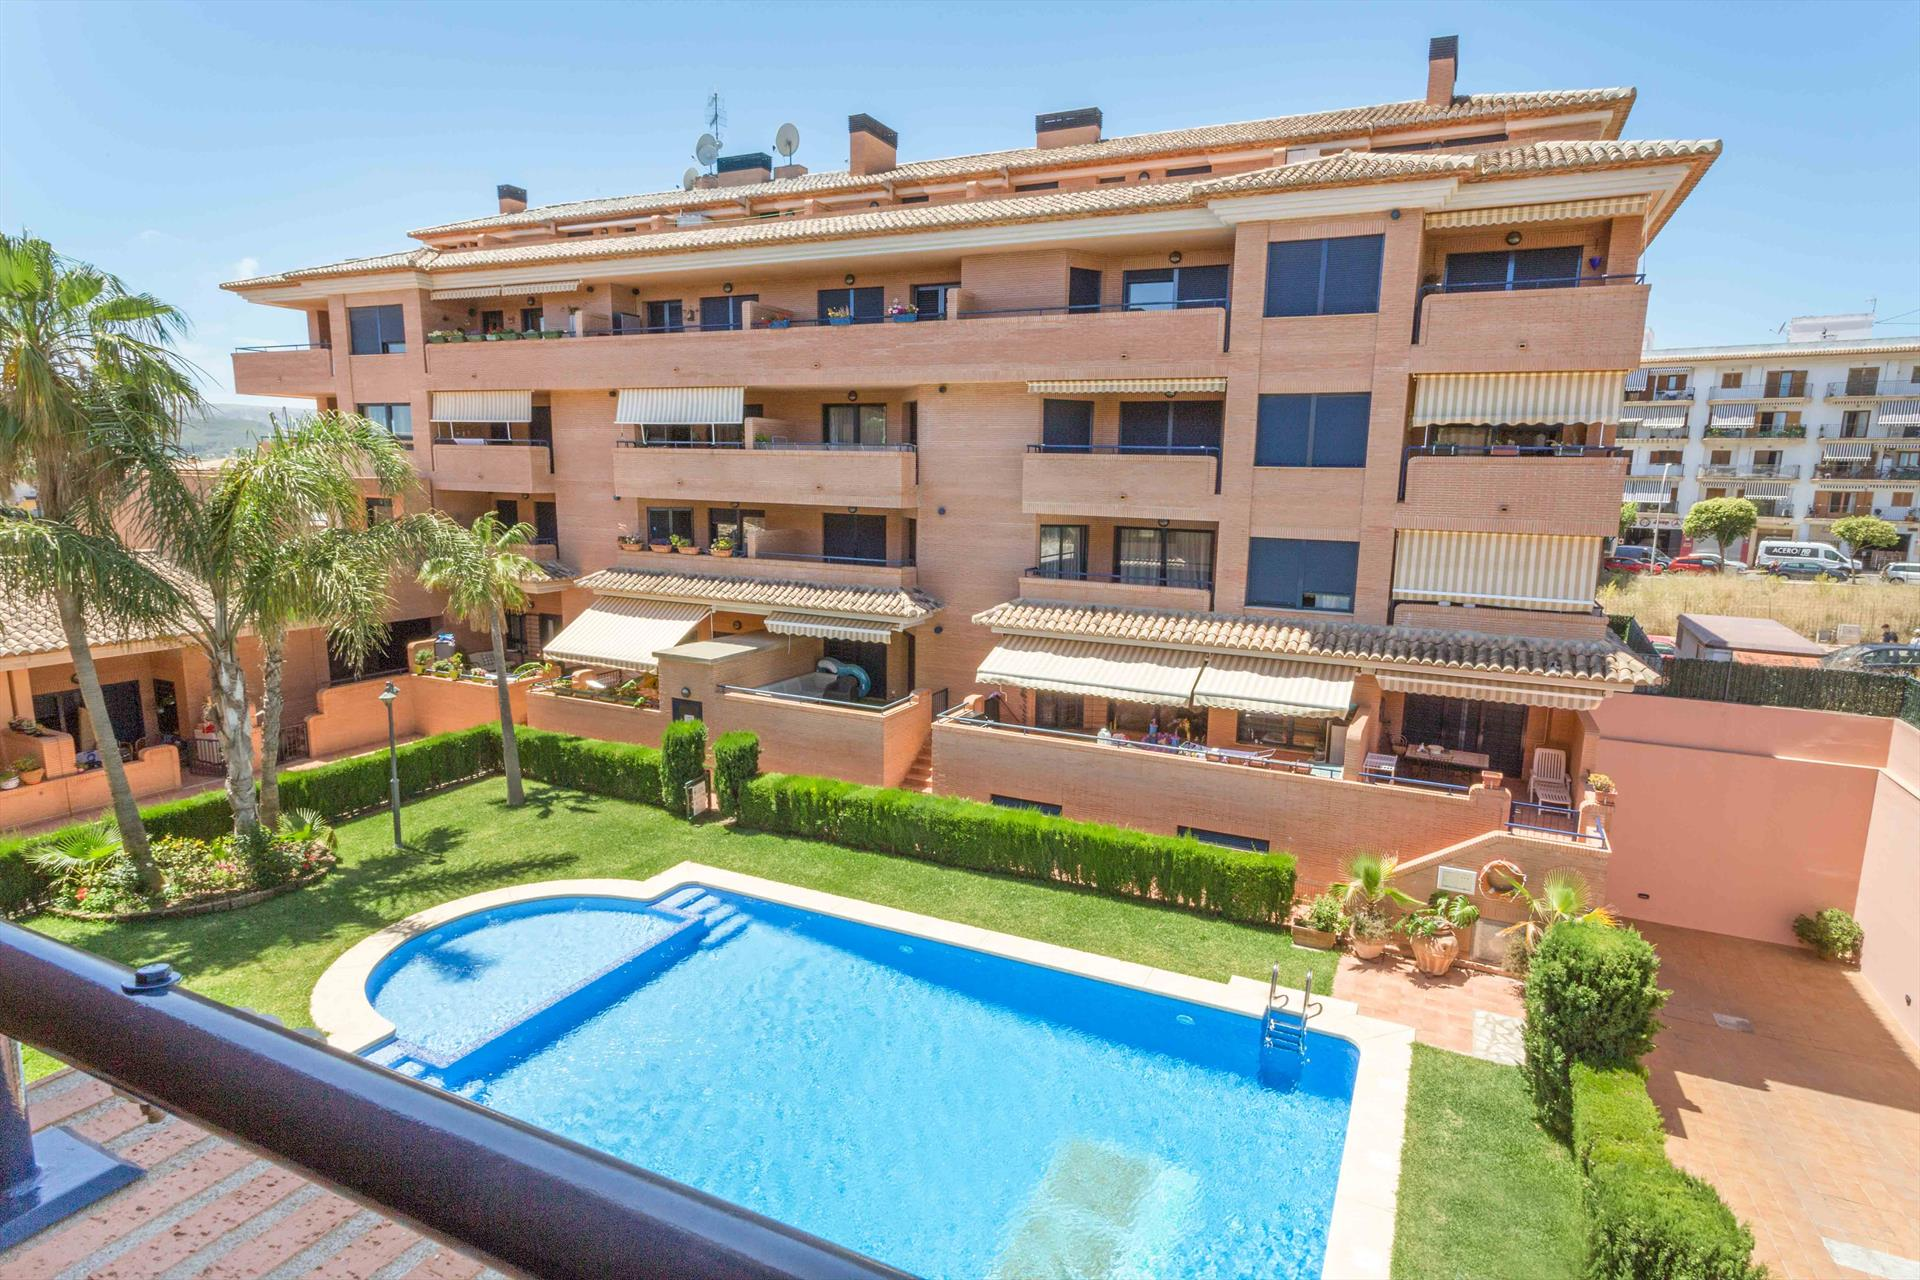 Apartamento Los Molinos, Nice comfortable apartment with communal pool, at walking distance from the old town of Javea for maximum 6 persons.The.....